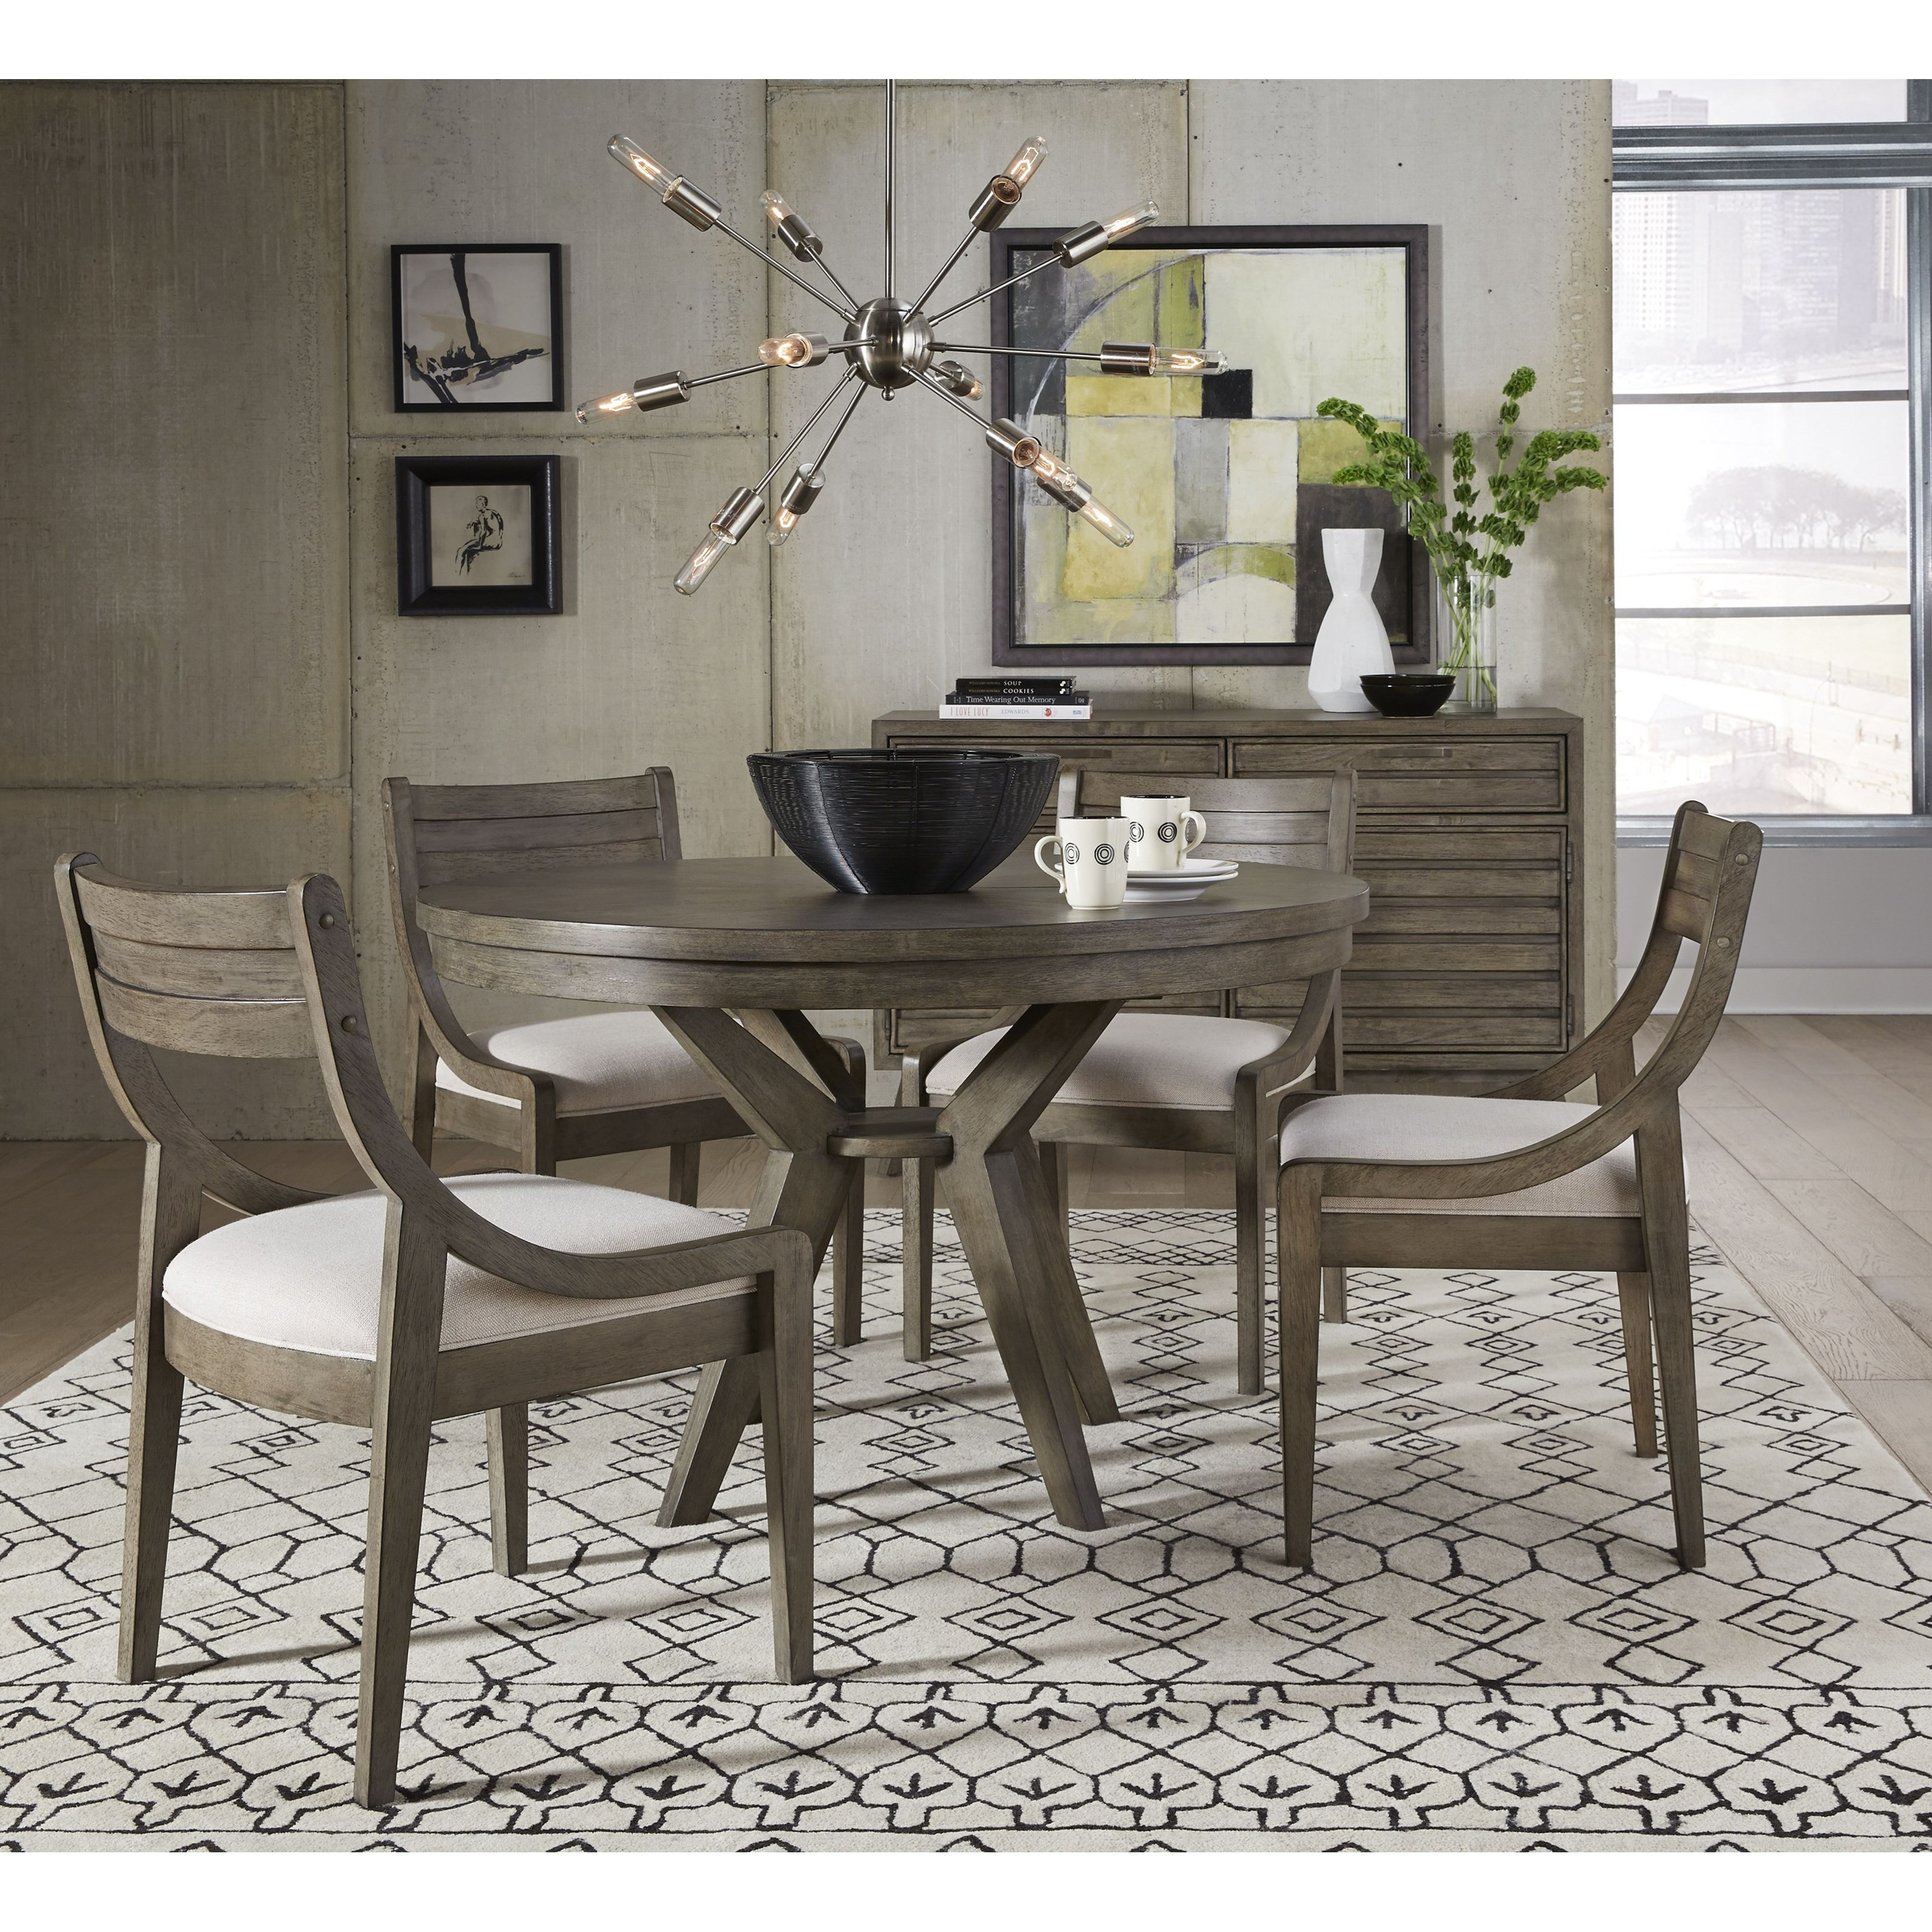 Greystone Casual Dining Room Group by Legacy Classic at Stoney Creek Furniture